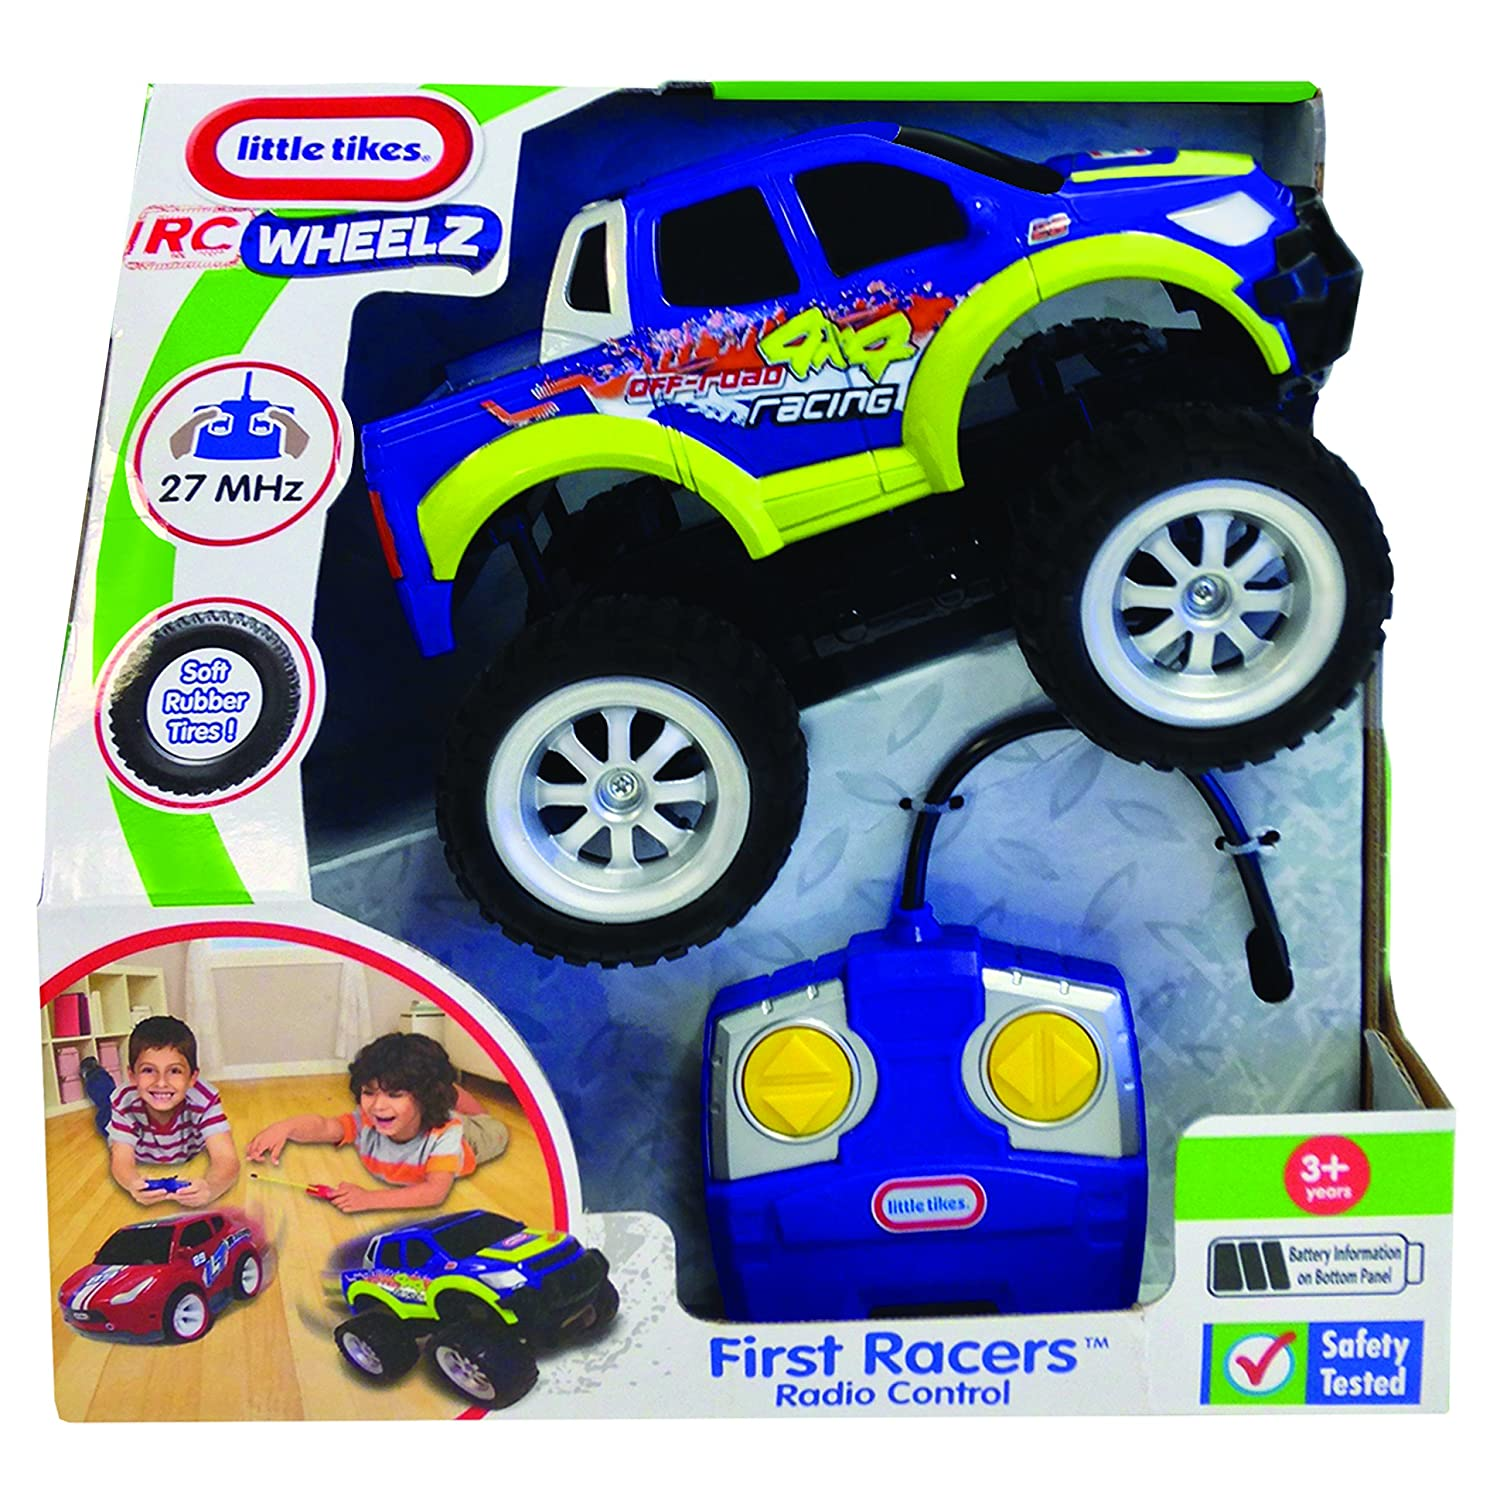 Better Sourcing Little Tikes Remote Control Truck Toy B01MQY2LU1